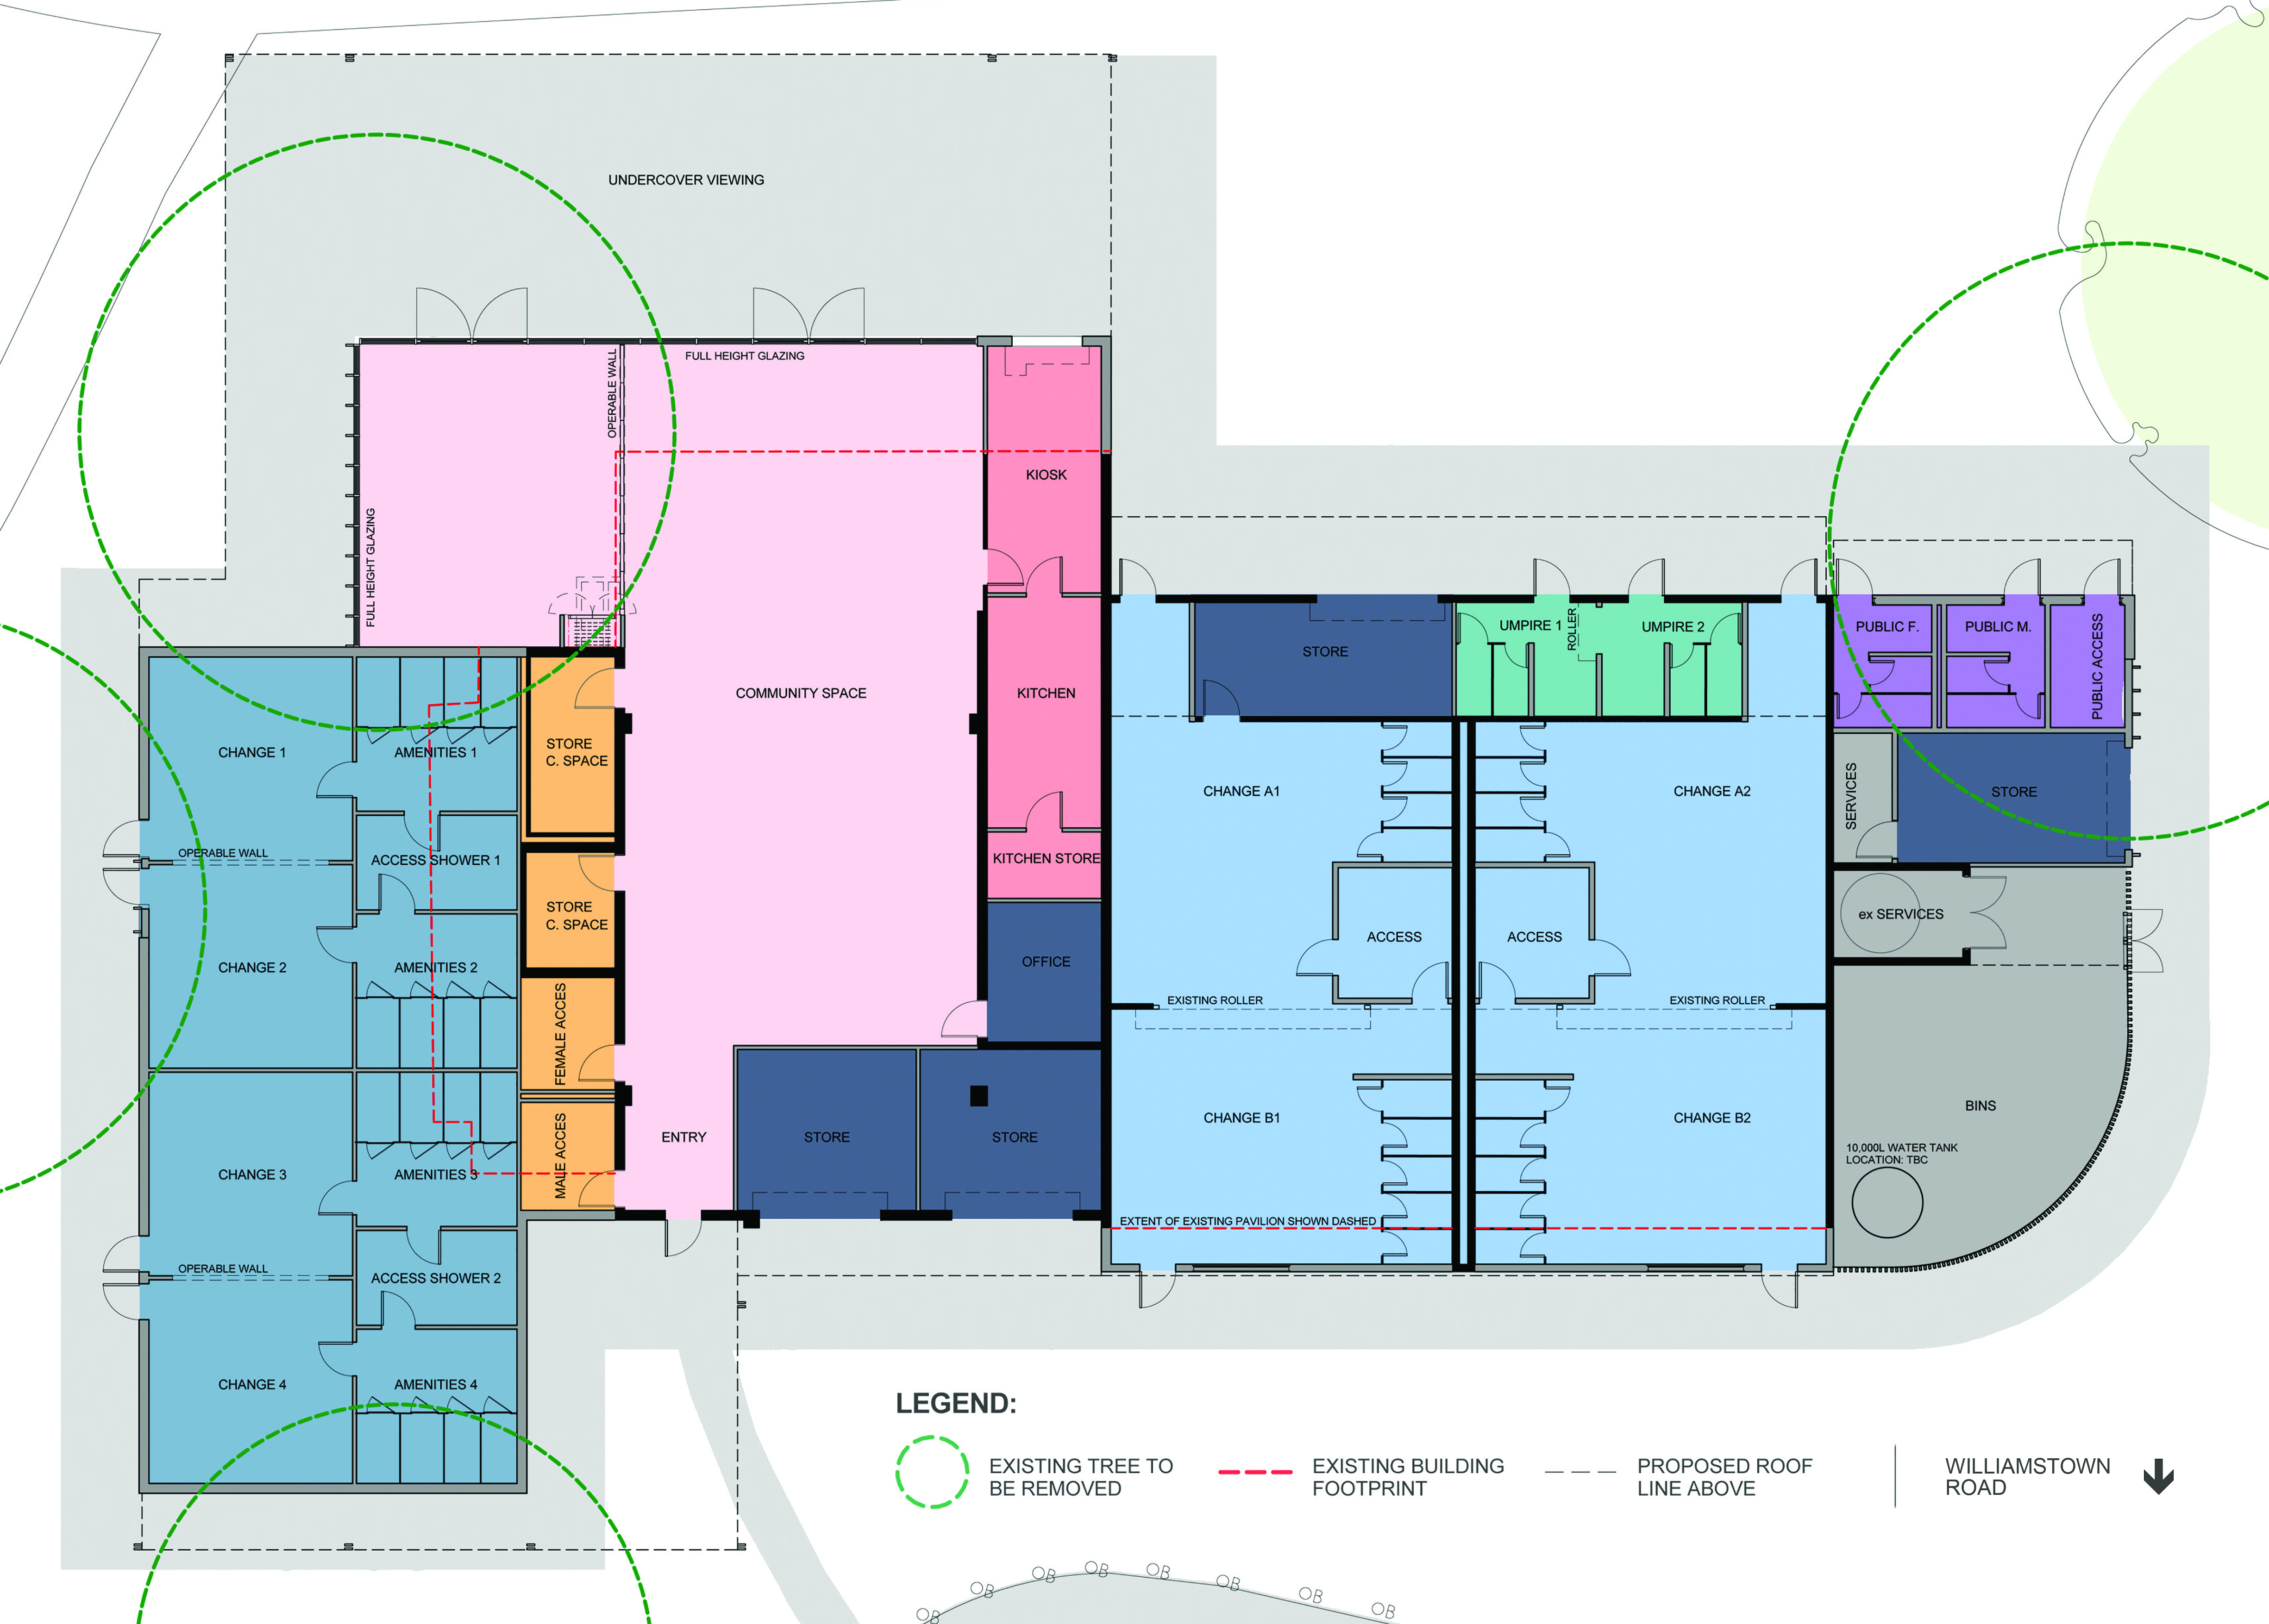 Floor plan with community space highlighted in pink